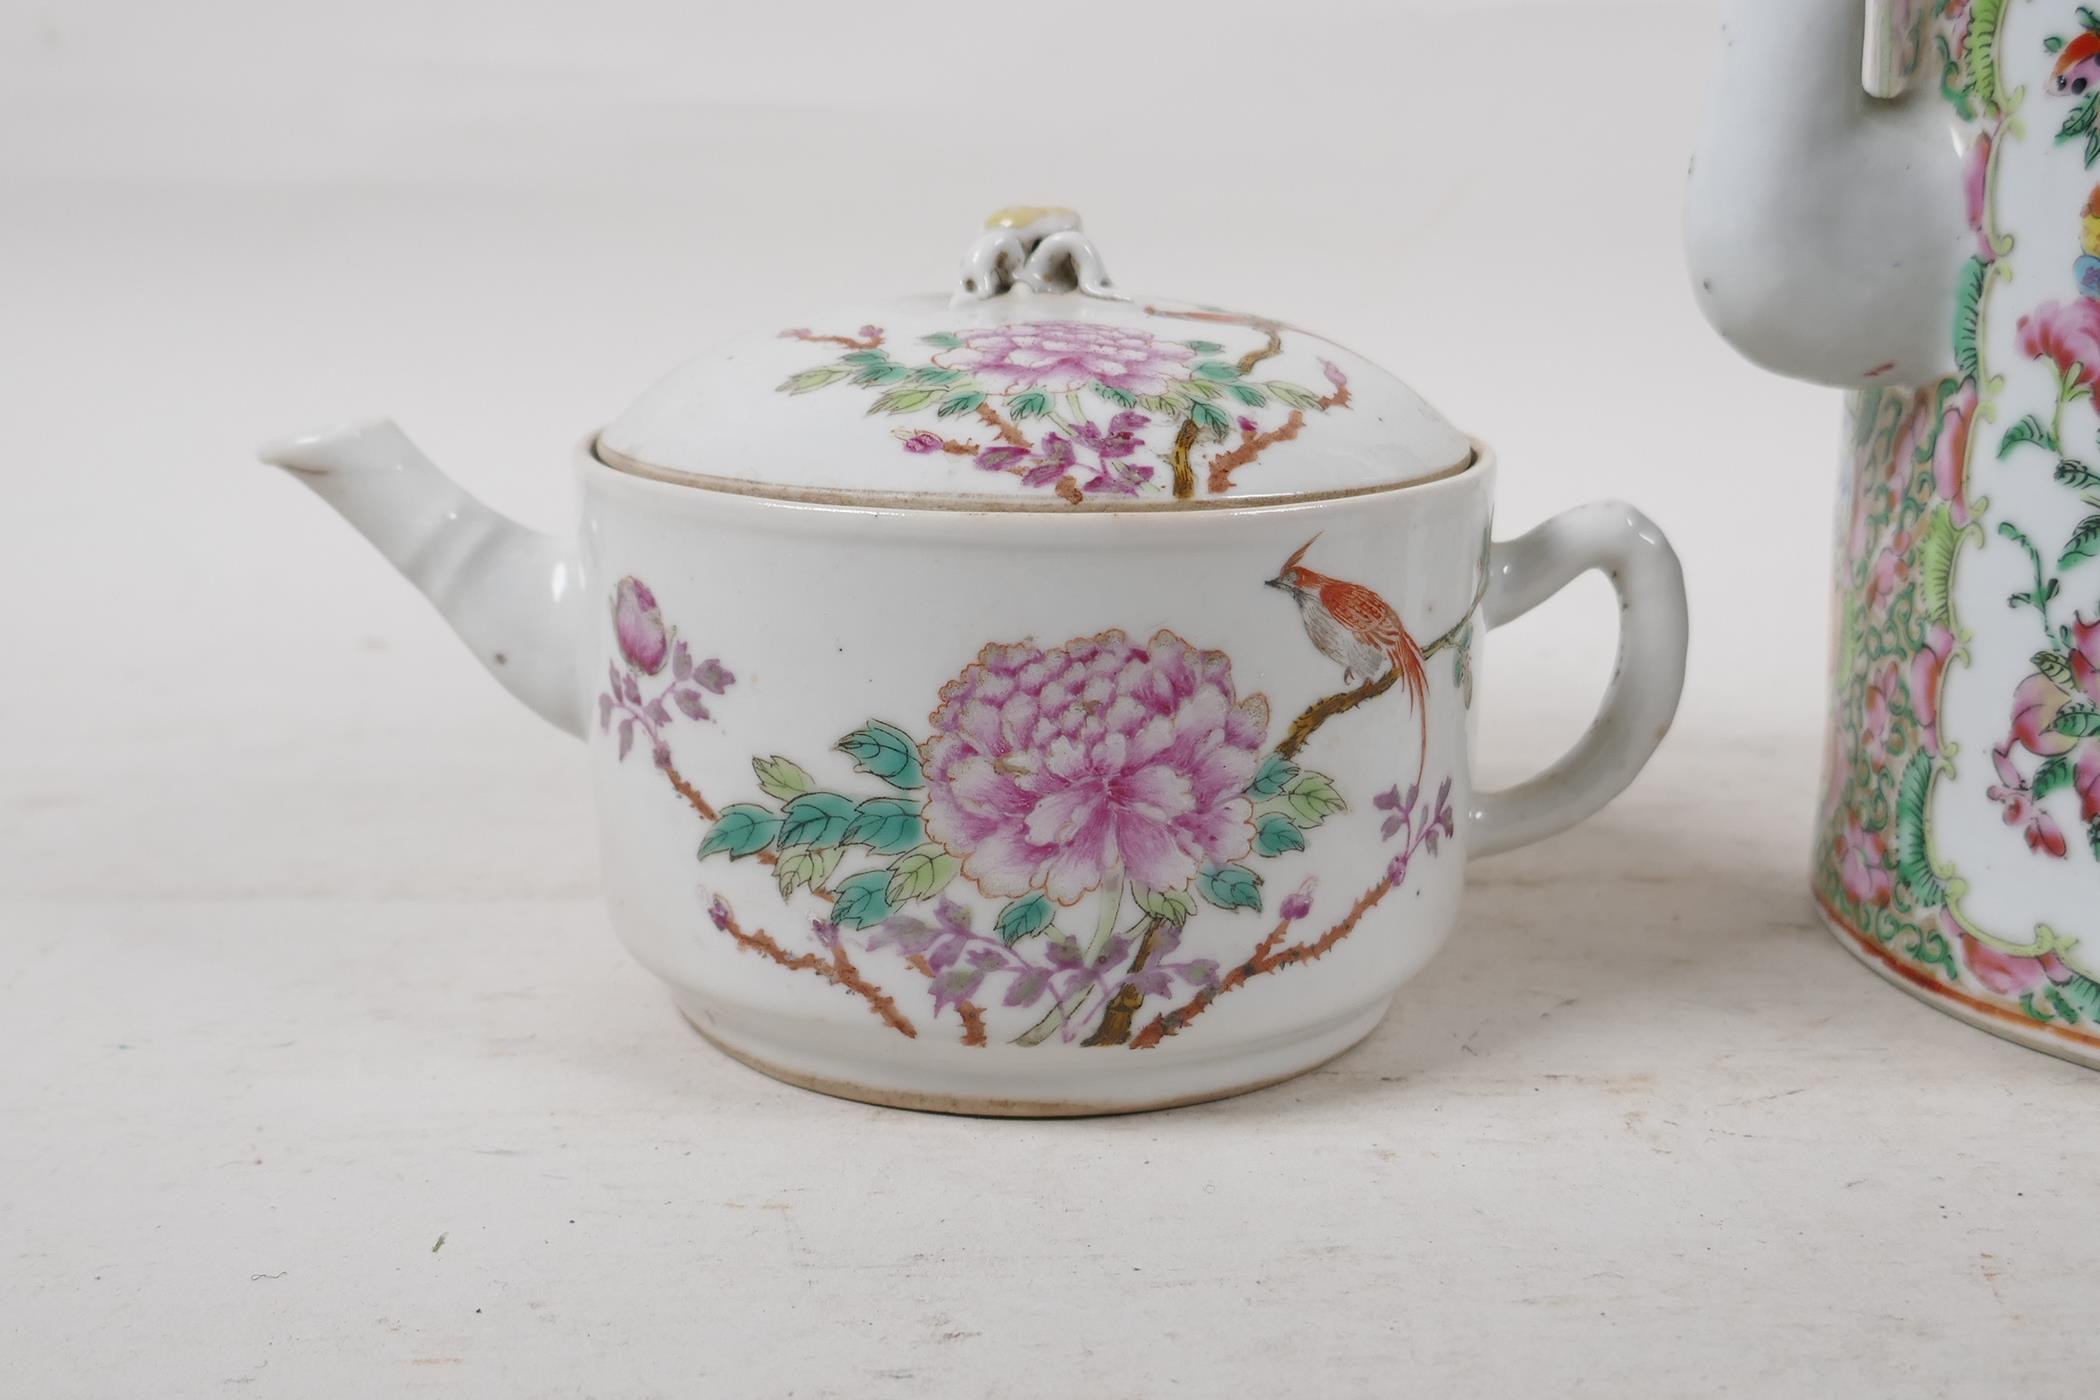 A Cantonese famille rose teapot decorated with figures, birds and flowers, A/F, and a republic - Image 2 of 7